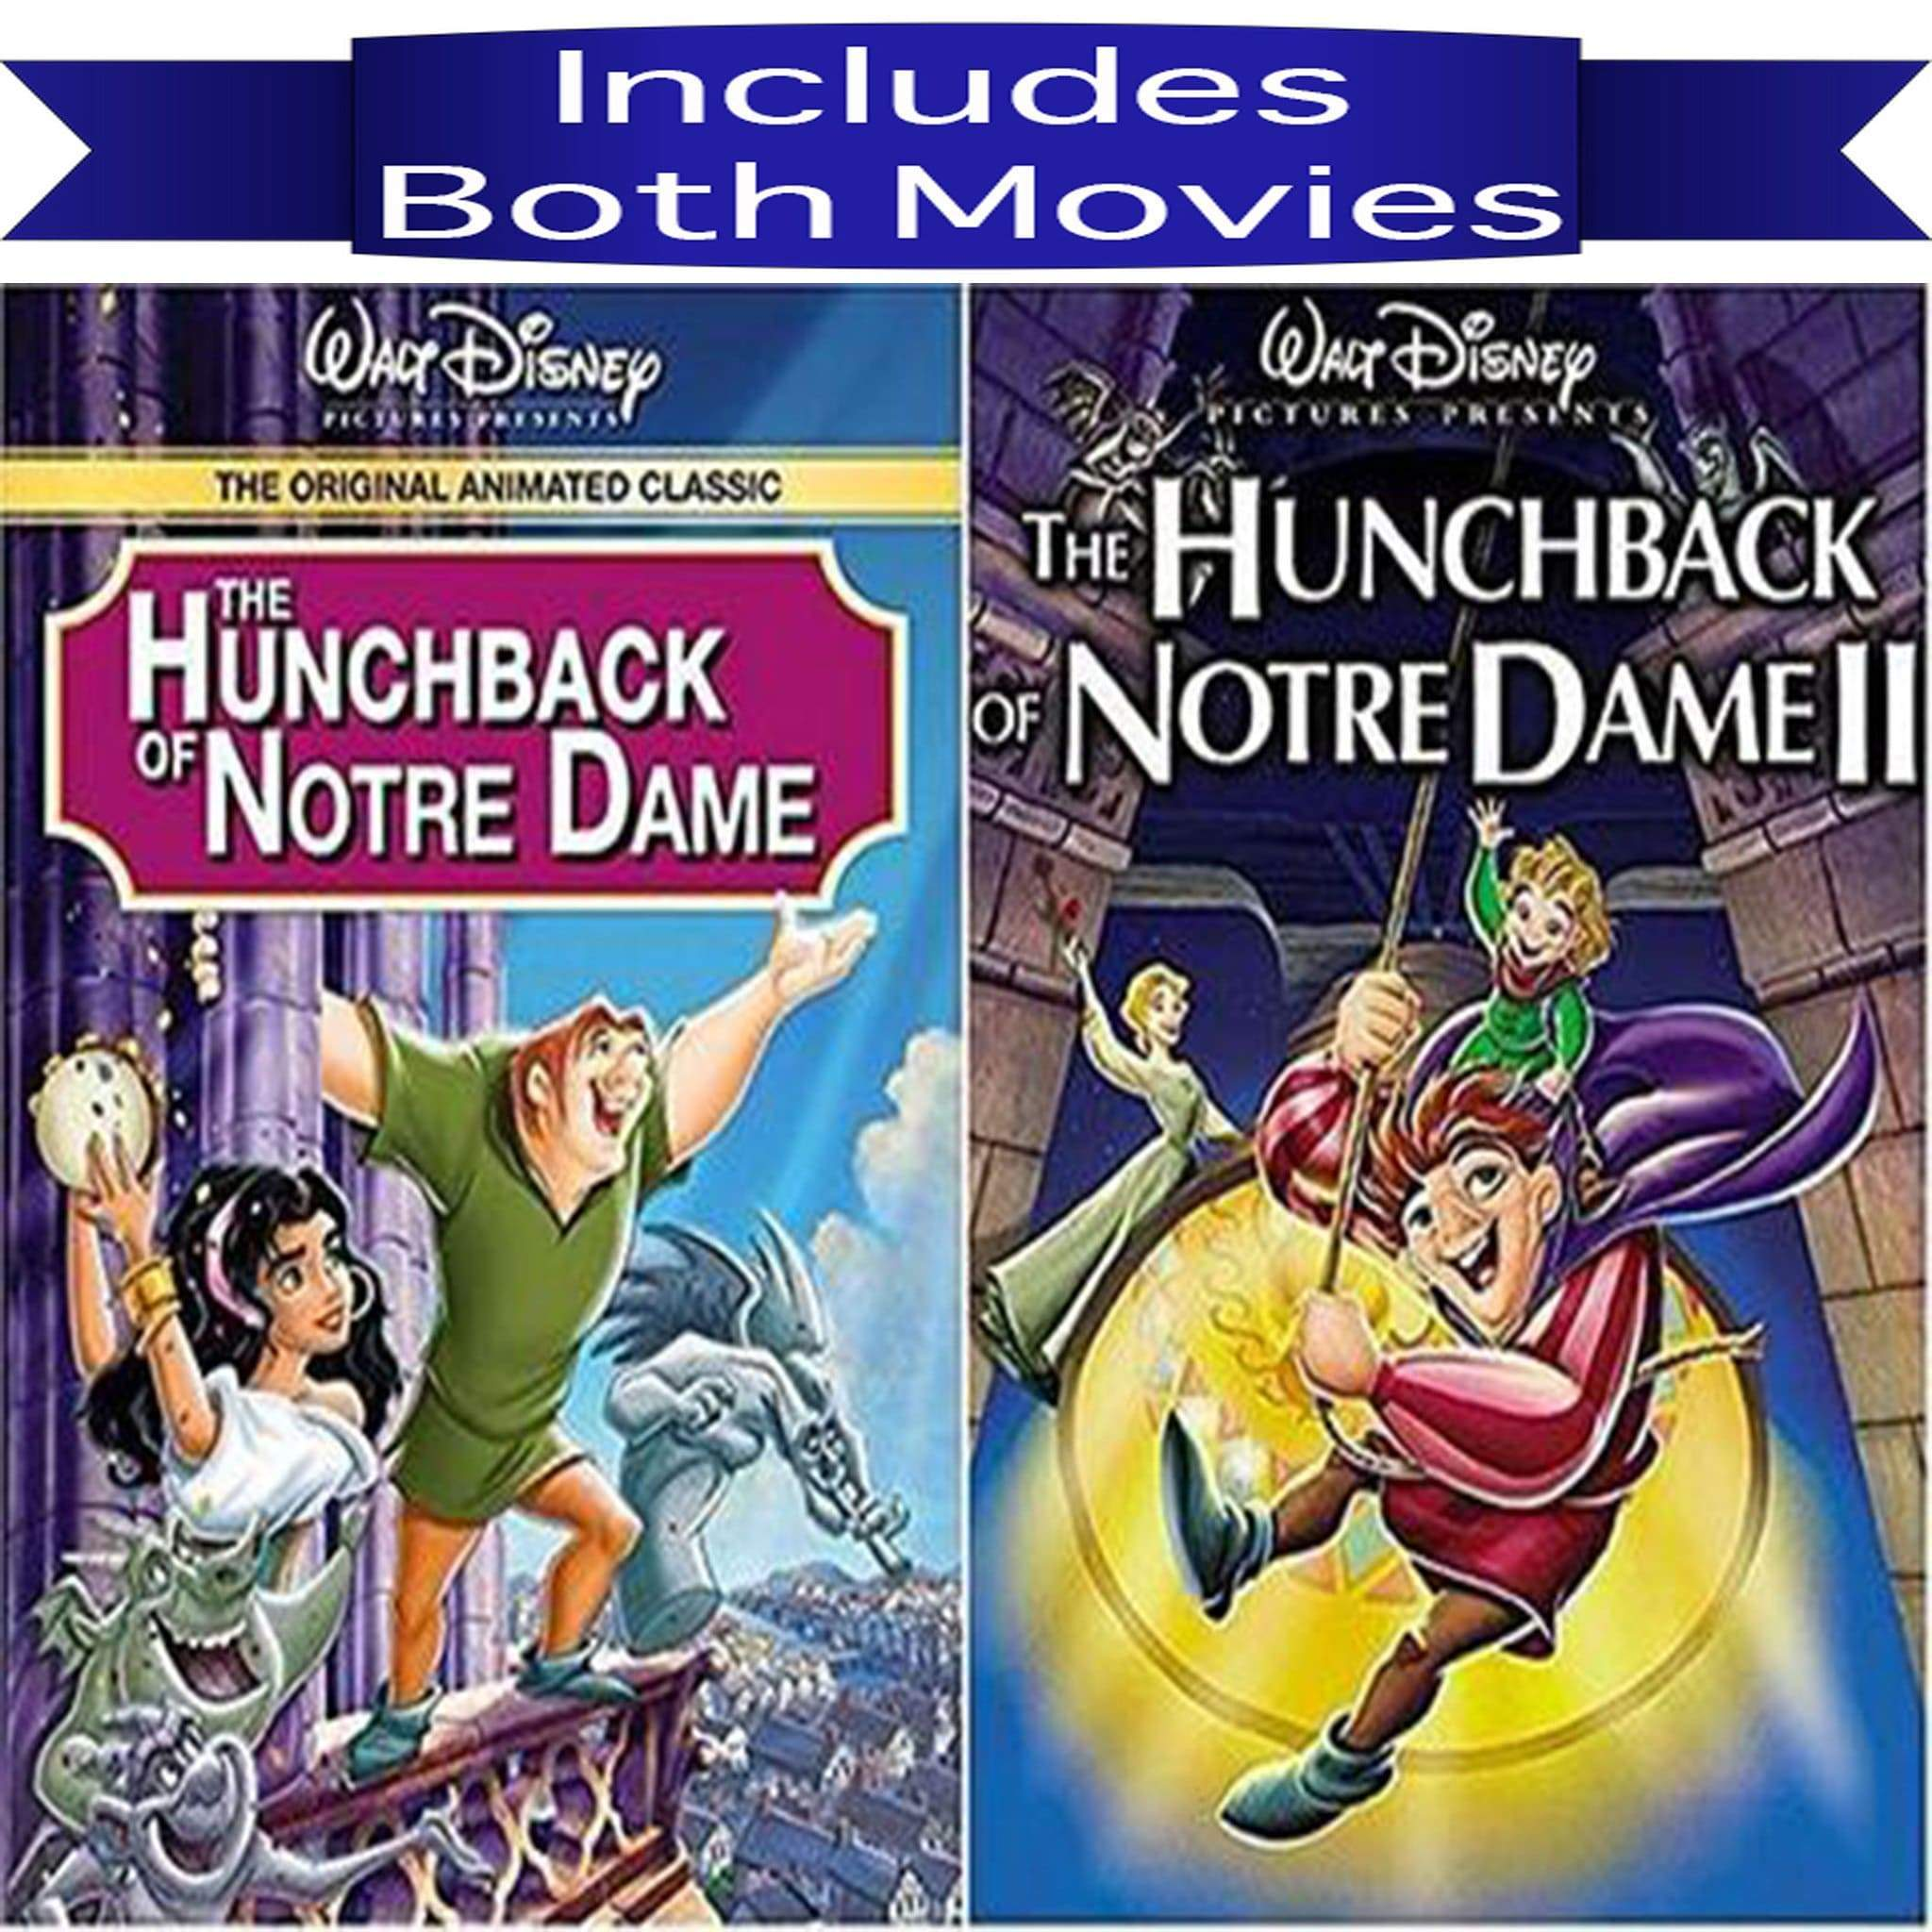 Walt Disney's The Hunchback of Notre Dame 1&2 DVD Set 2 Movie Collection - DVDsHQ